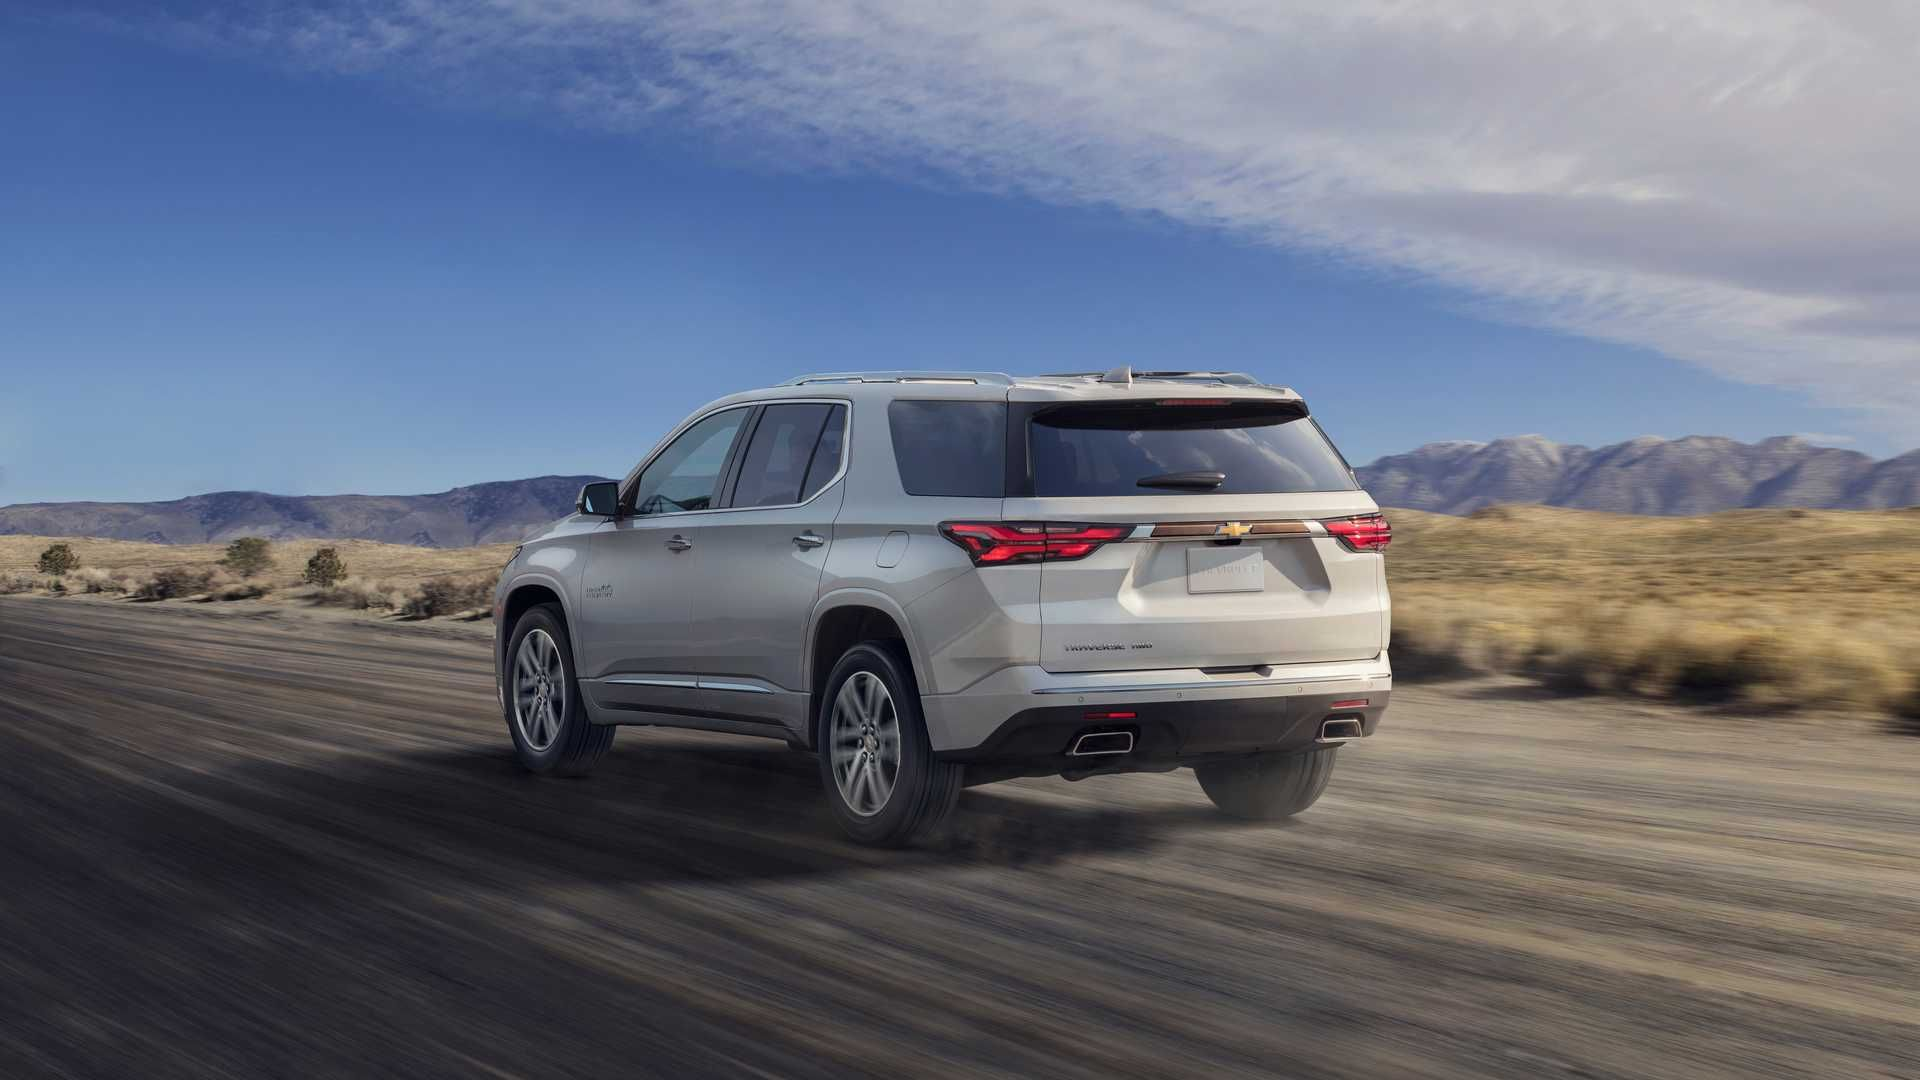 2021 Chevrolet Traverse Adds Safety Gear Style And Cabin Tweaks In 2020 Chevrolet Traverse Chevrolet Ford Mustang Shelby Gt500